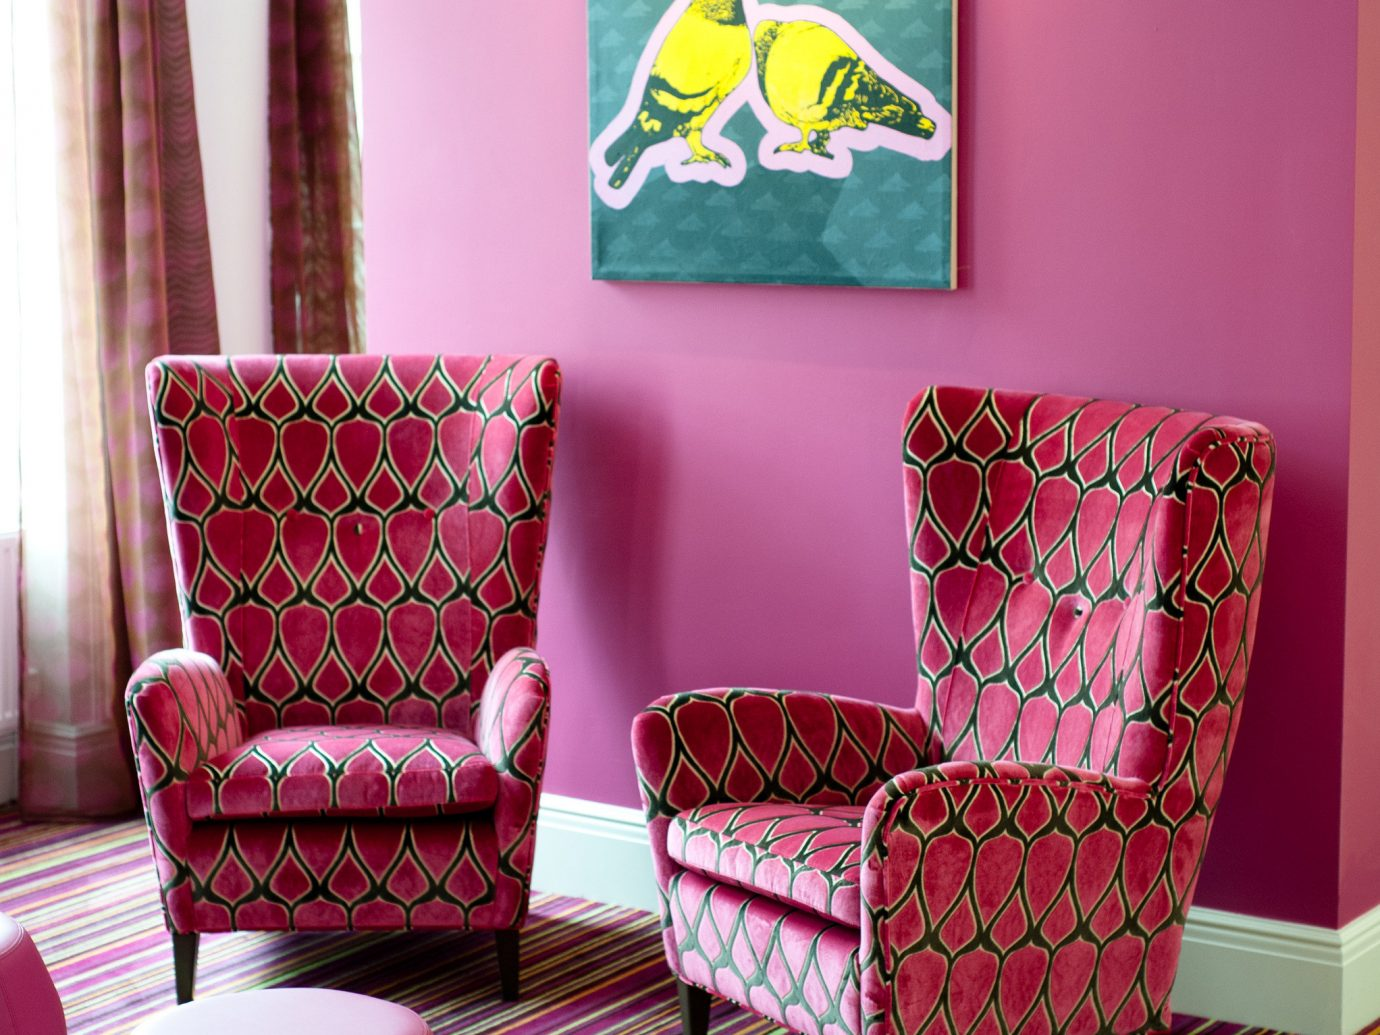 Budget color pink room indoor living room red interior design furniture bed sheet lighting Design colorful chair seat textile sofa colored decorated